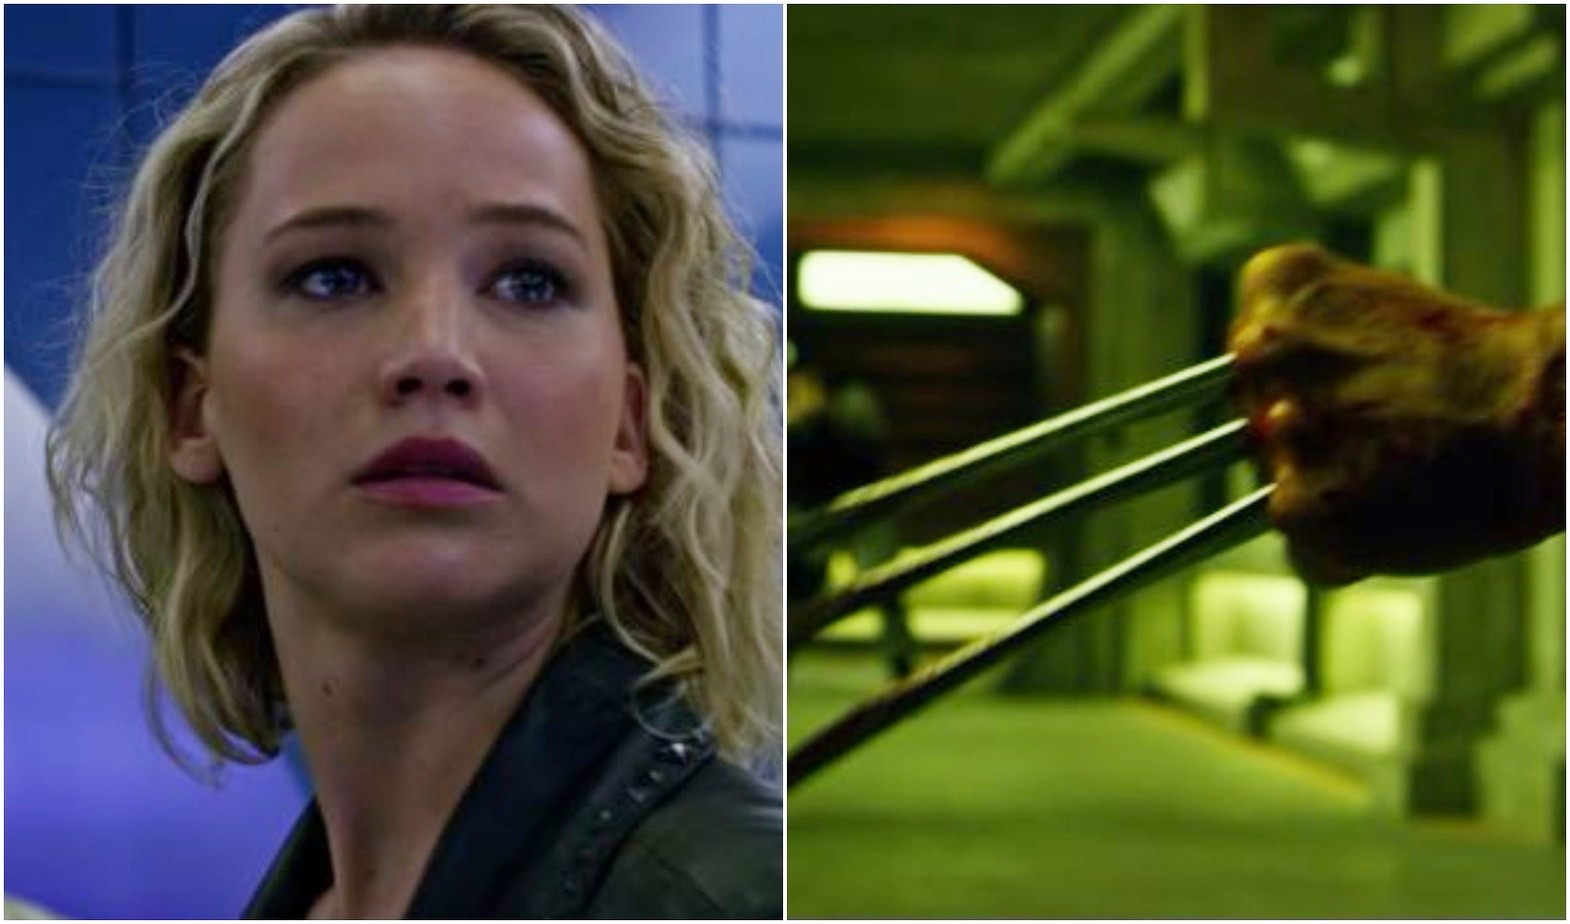 WATCH: Hugh Jackman's Wolverine is BACK in brand new X-Men: Apocalypse trailer